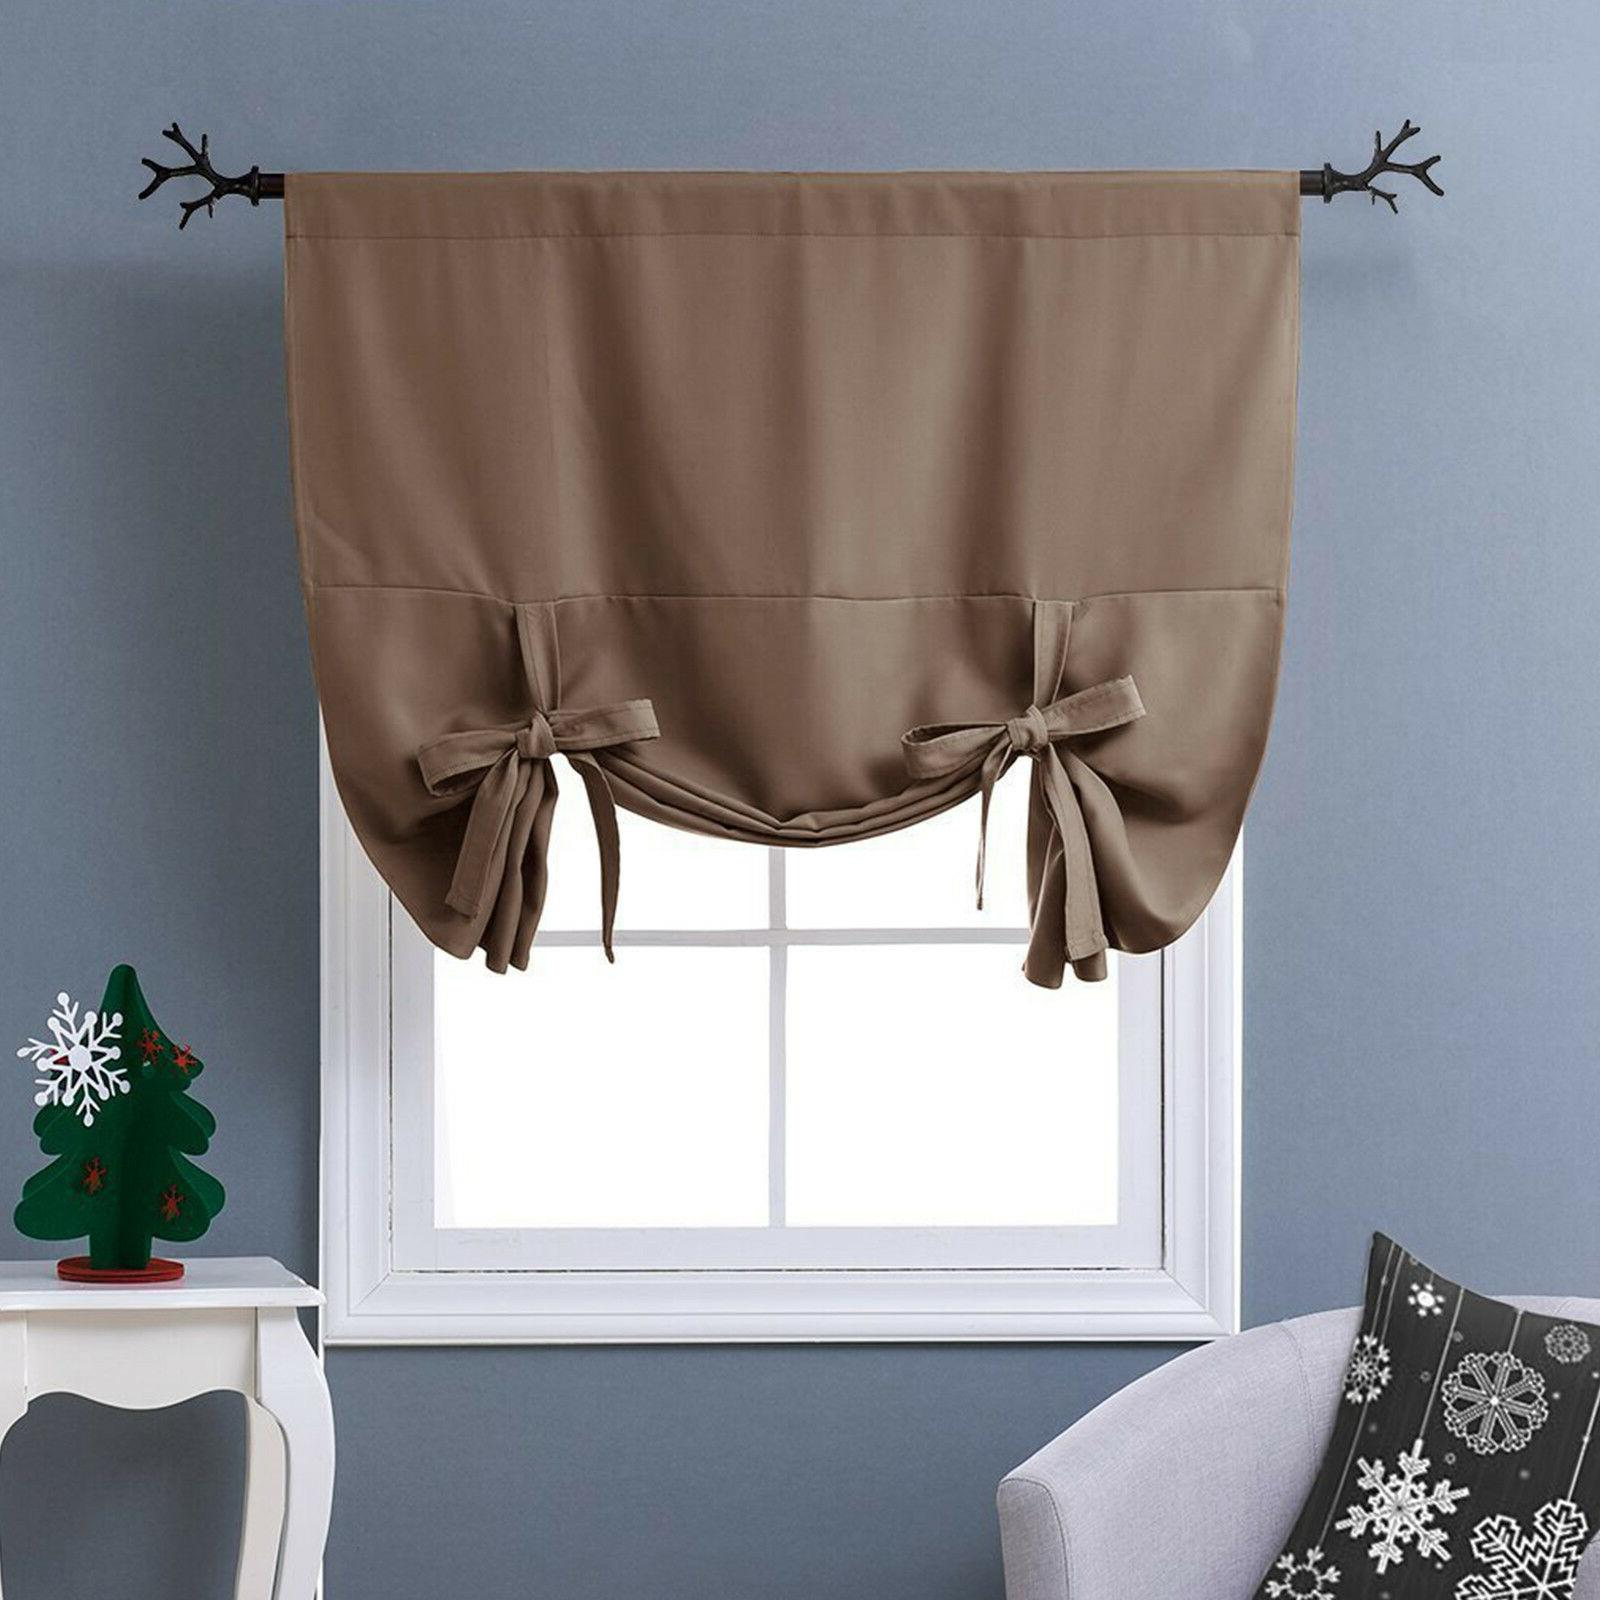 Thermal Drapes Tie Up Insulated Shades Kitchen Short Grommet